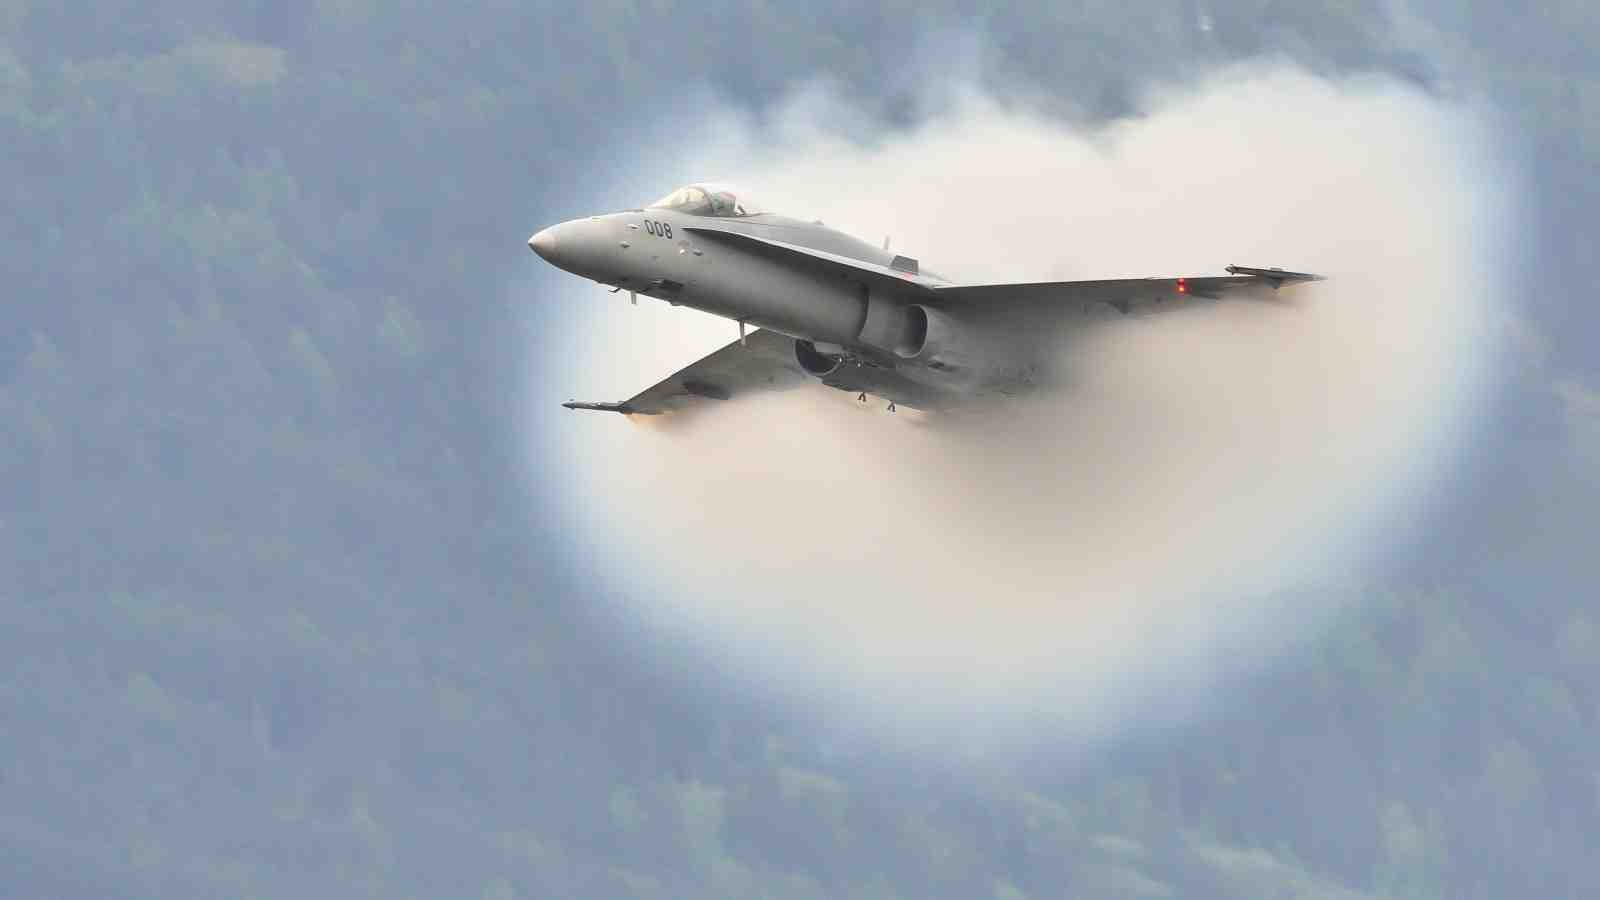 Jet-plane breaks the sound barrier in front of the public during the Breitling Sion airshow on September 17, 2011